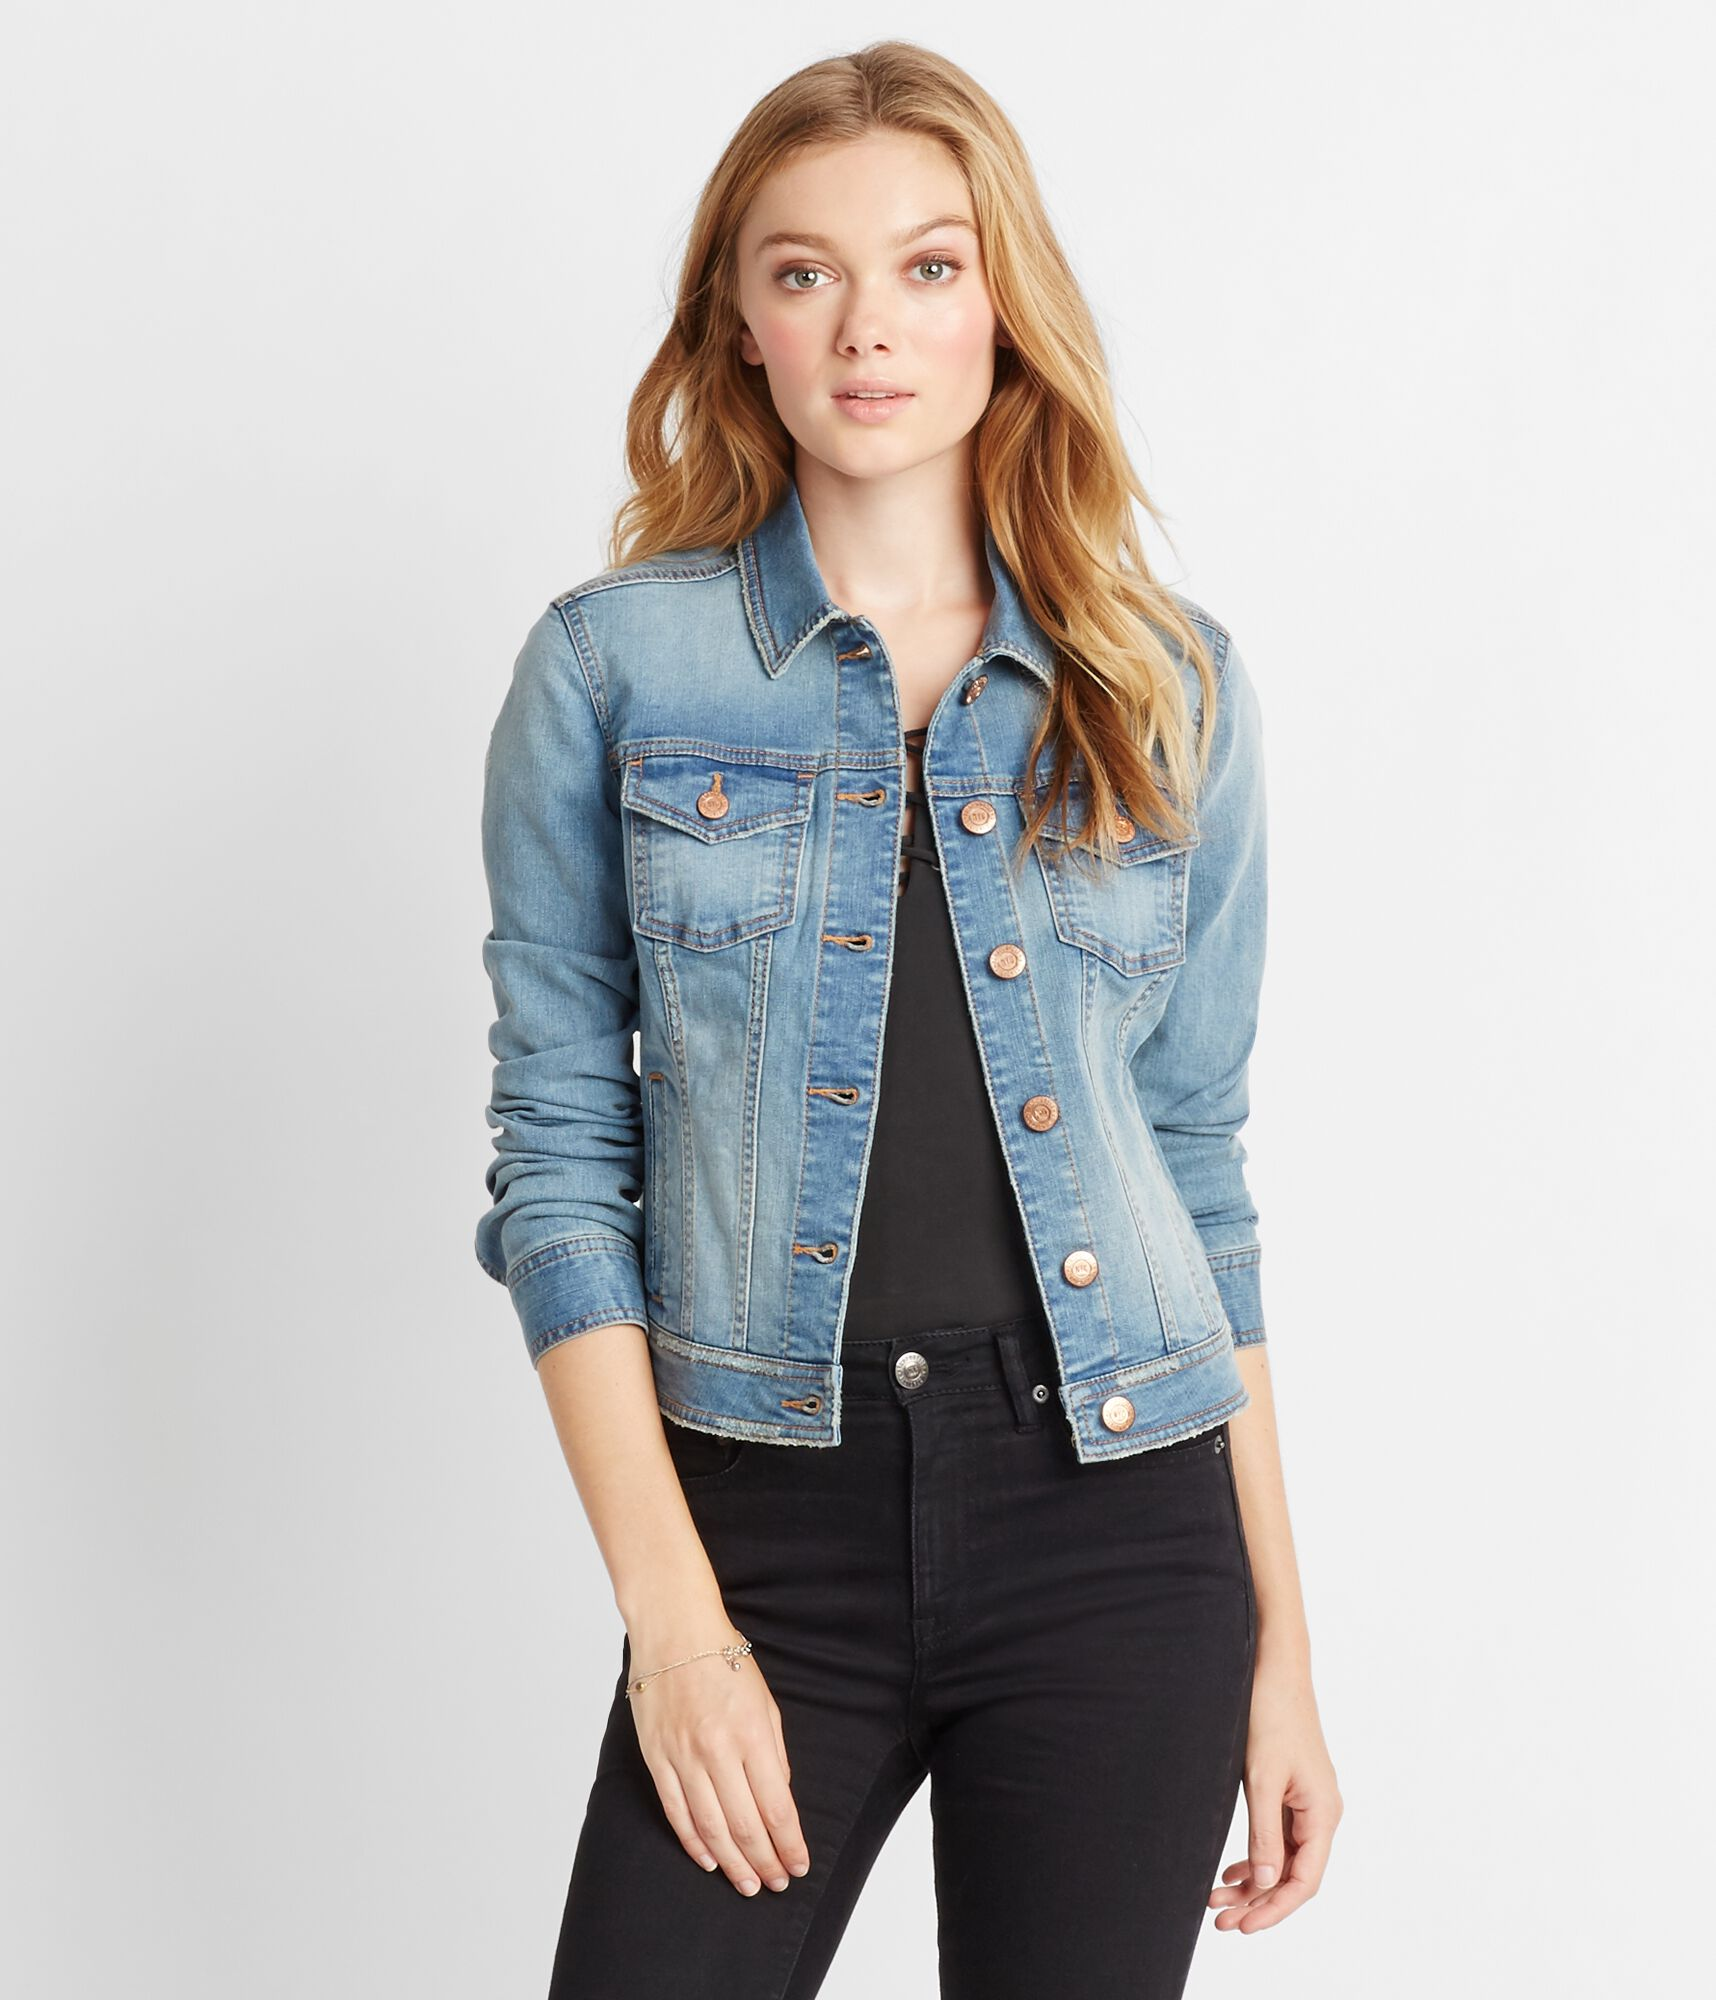 Light Denim Jacket for Teen Girls & Women | Aeropostale